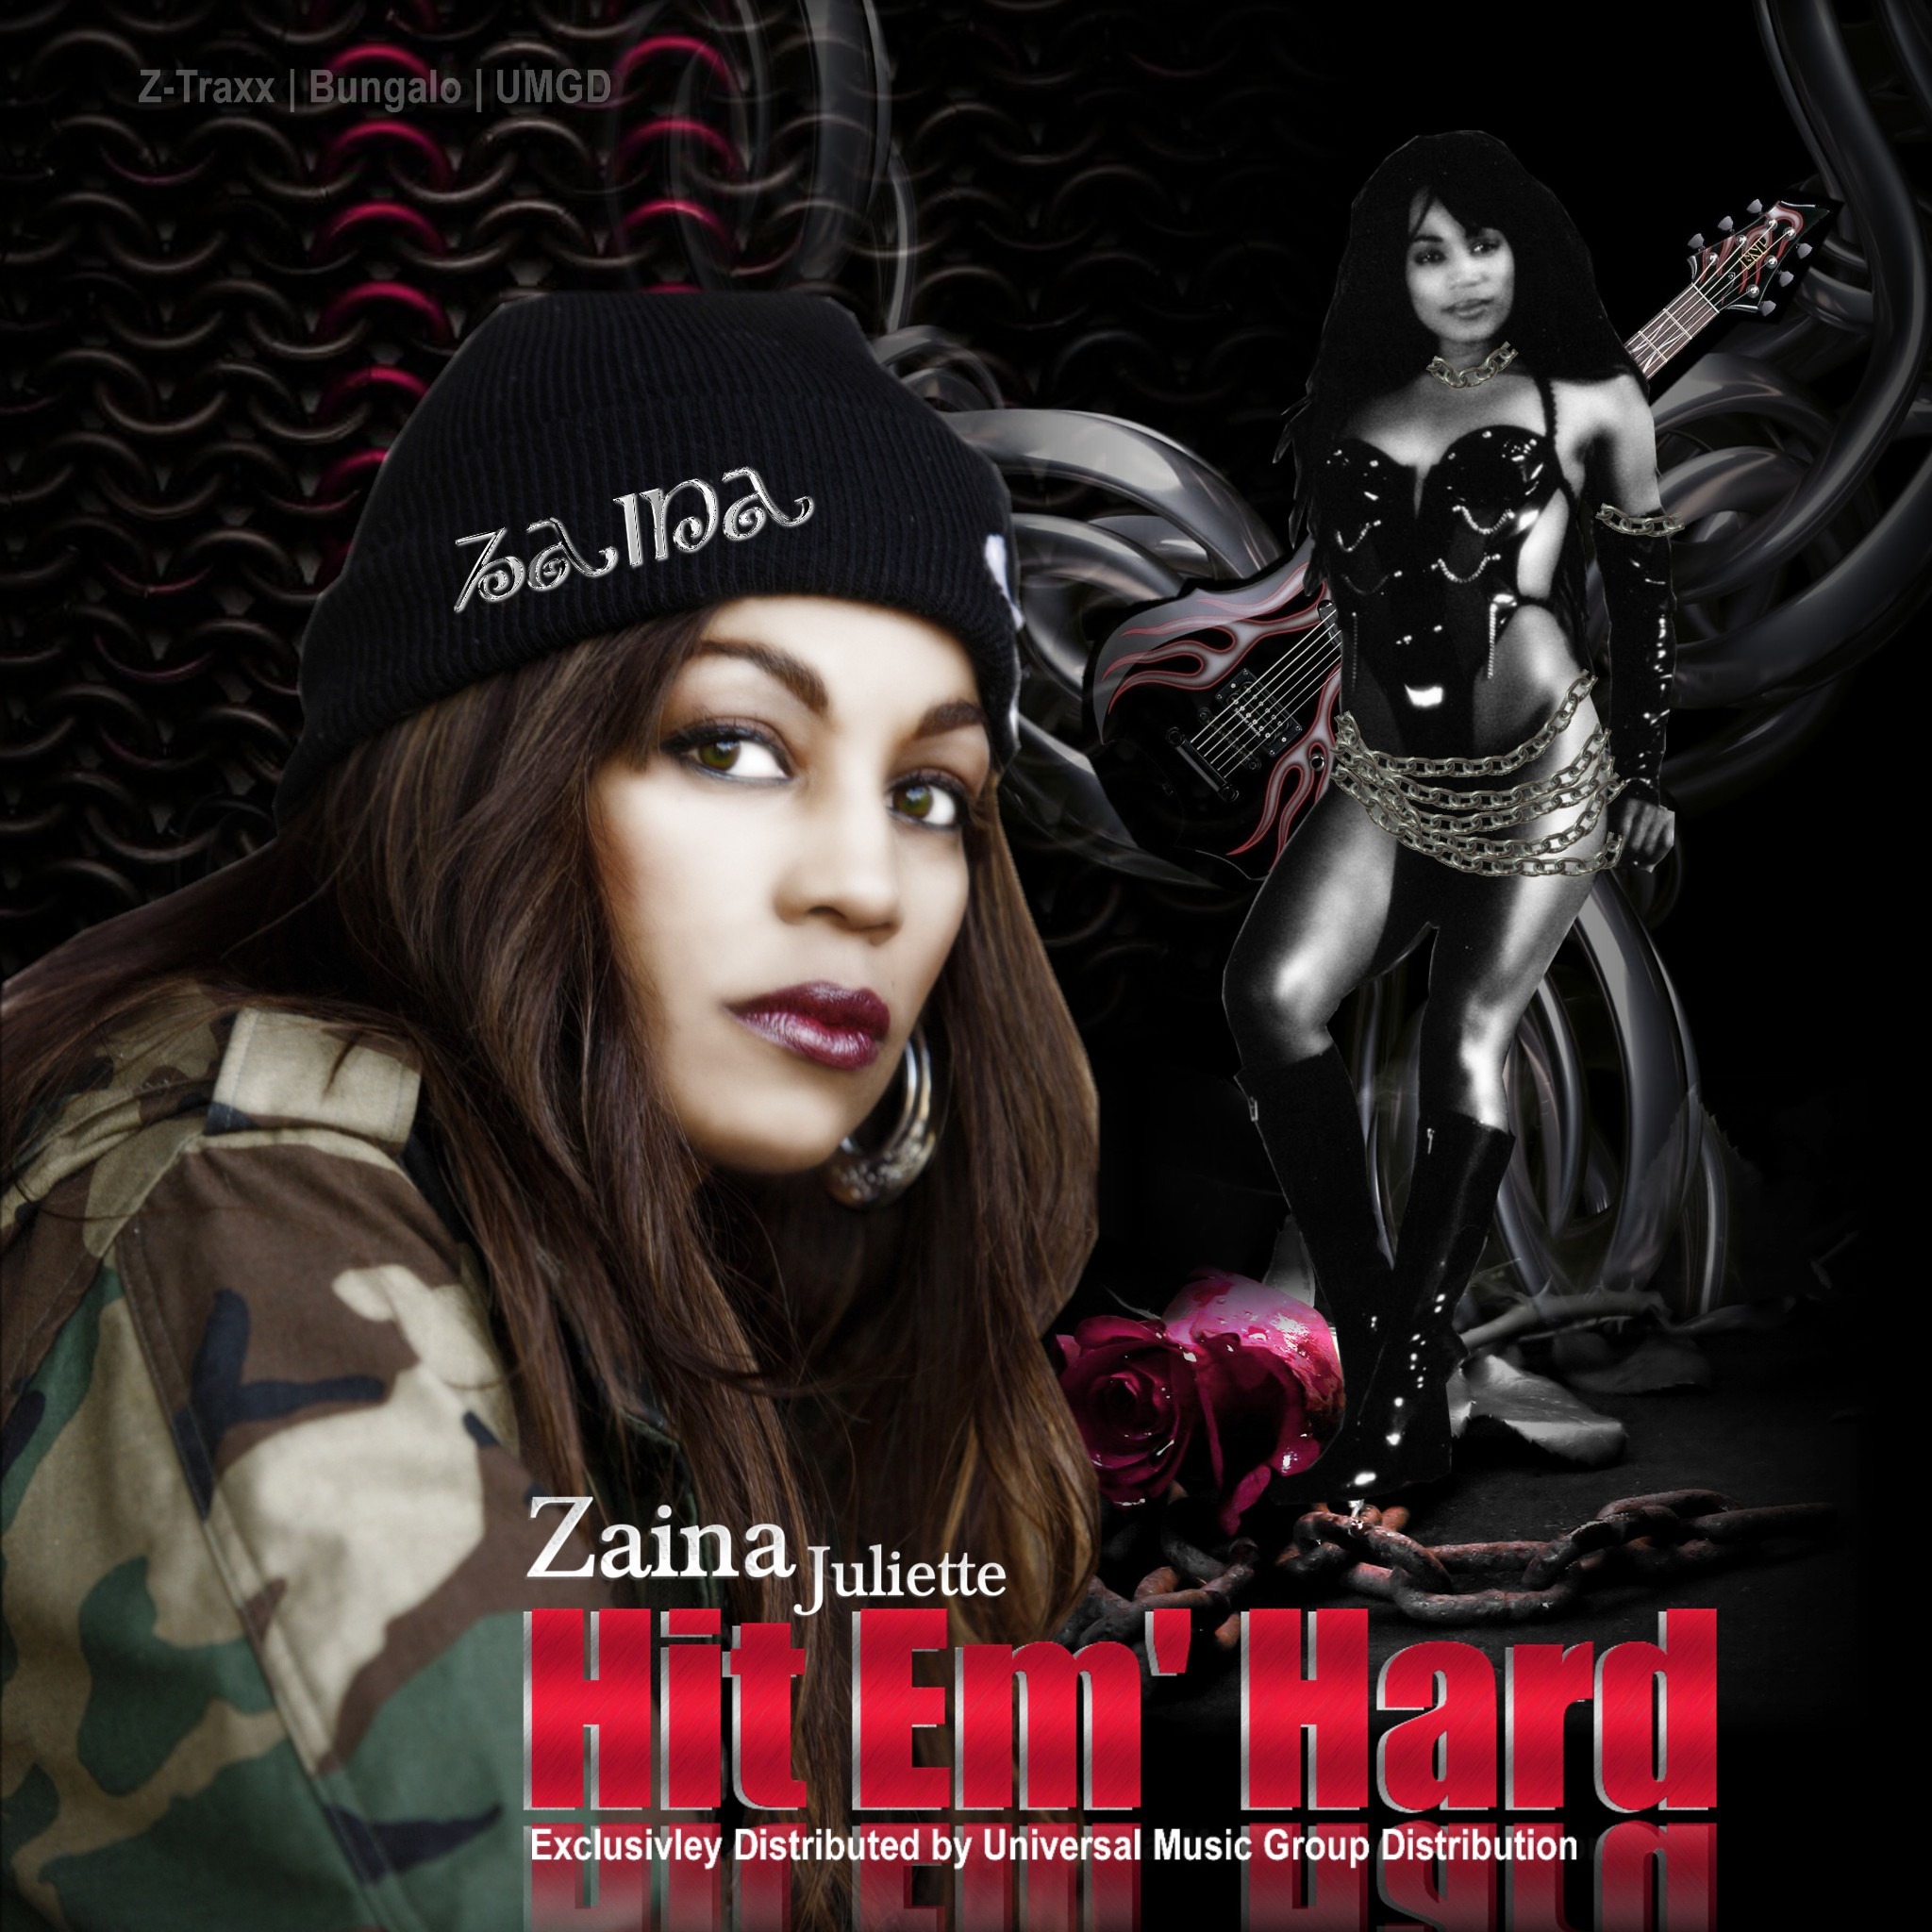 Zana+Hit+Em+Hard+CD+cover3Red+444.jpg